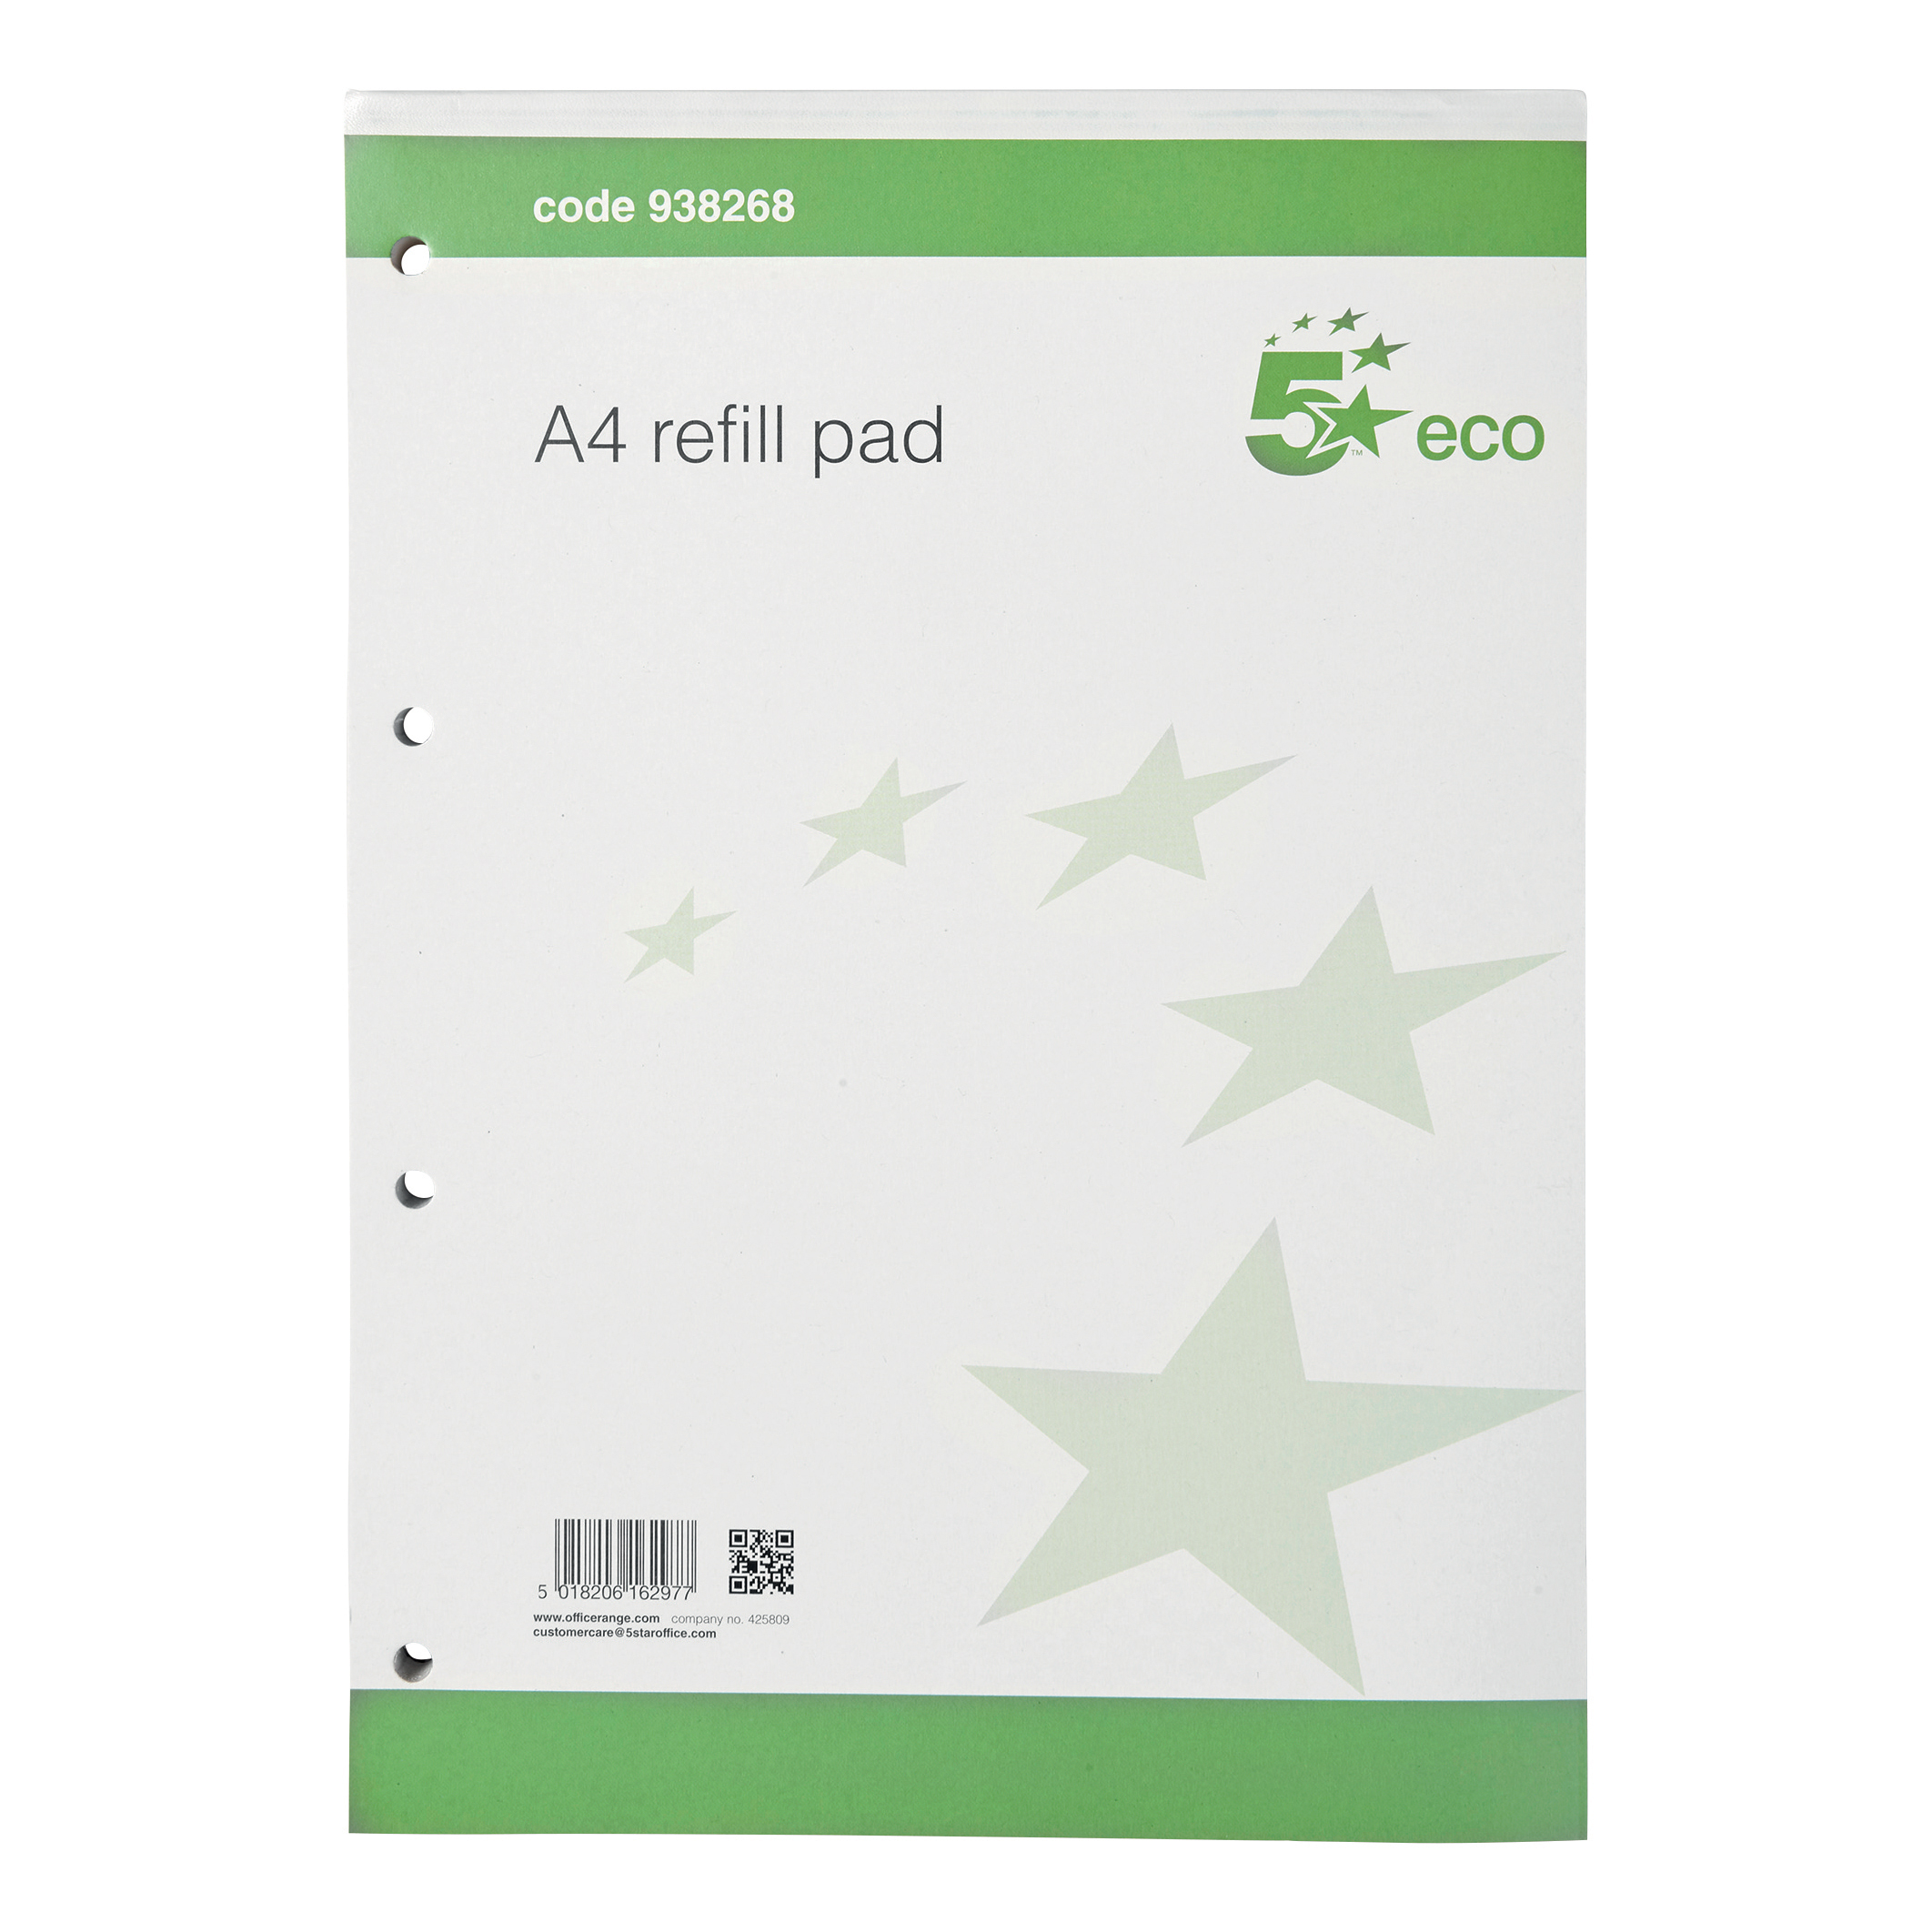 Holes Quotes And Page Numbers: 5 Star Eco Refill Pad Headbound 70gsm Ruled Margin Punched